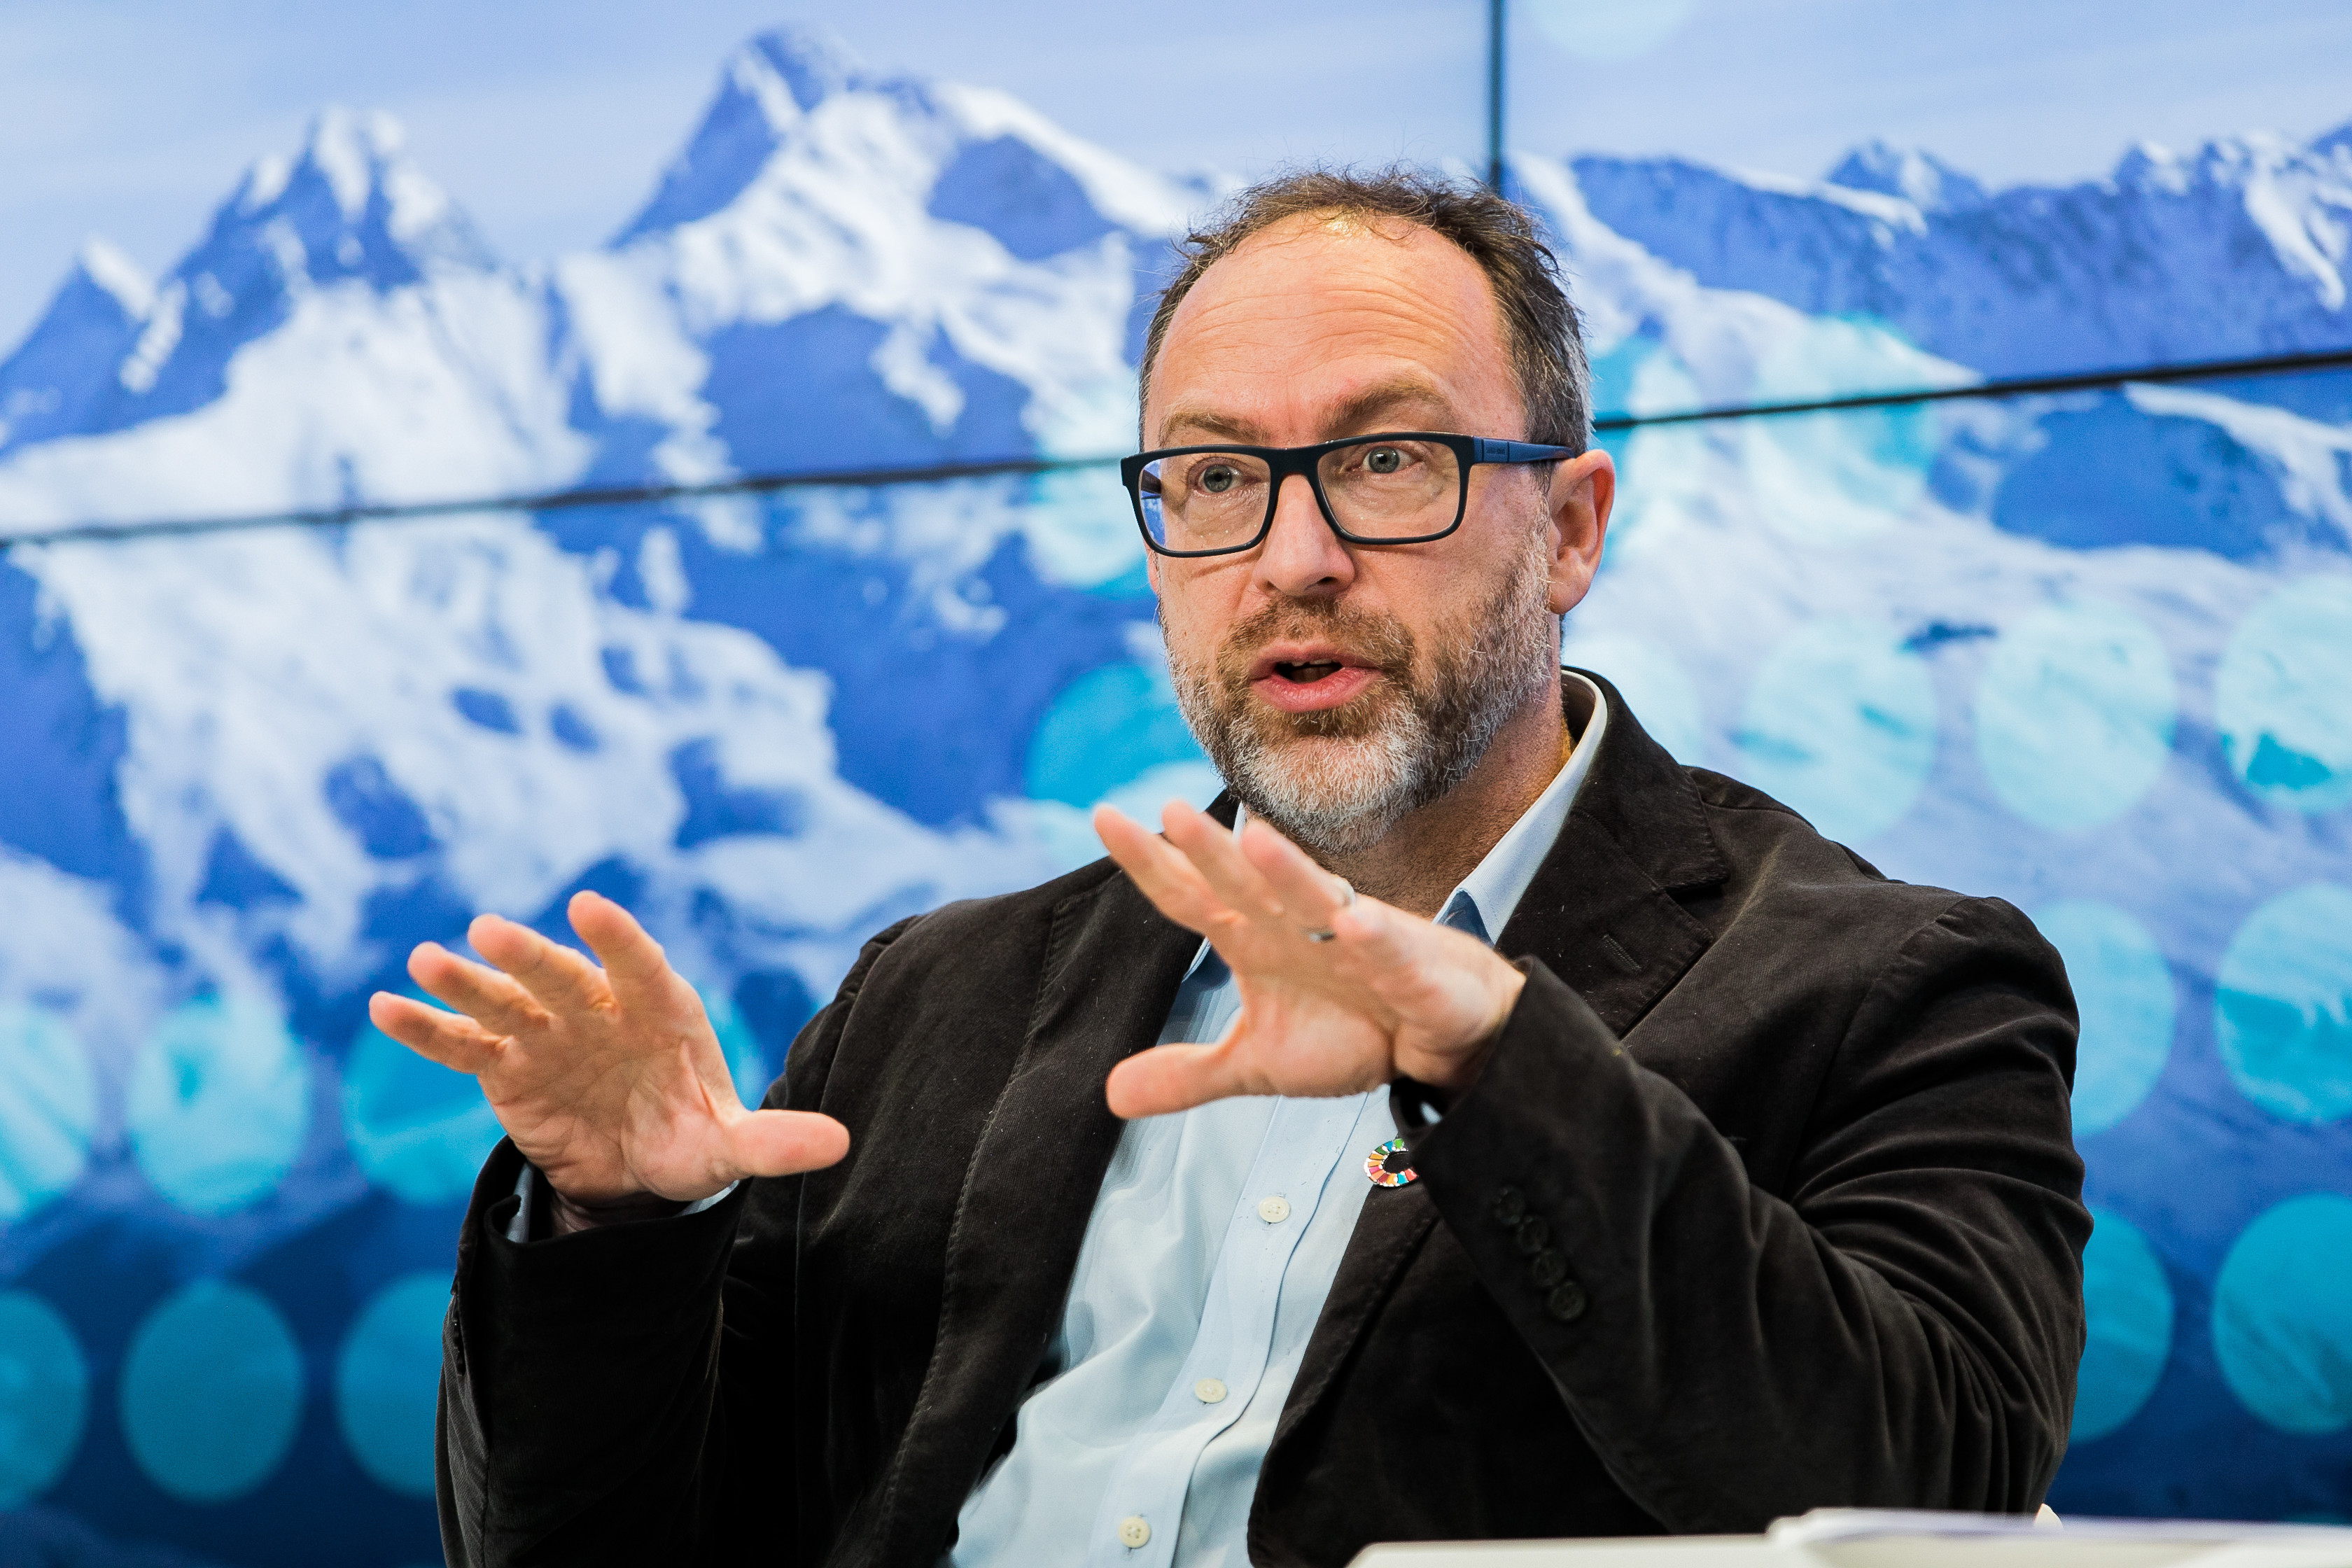 """Jimmy Wales, Founder, Wikipedia.org, USA speaking during the Session """"Fake News versus Real Politics"""" at the Annual Meeting 2018 of the World Economic Forum in Davos, January 24, 2018.Copyright by World Economic Forum / Jakob Polacsek"""